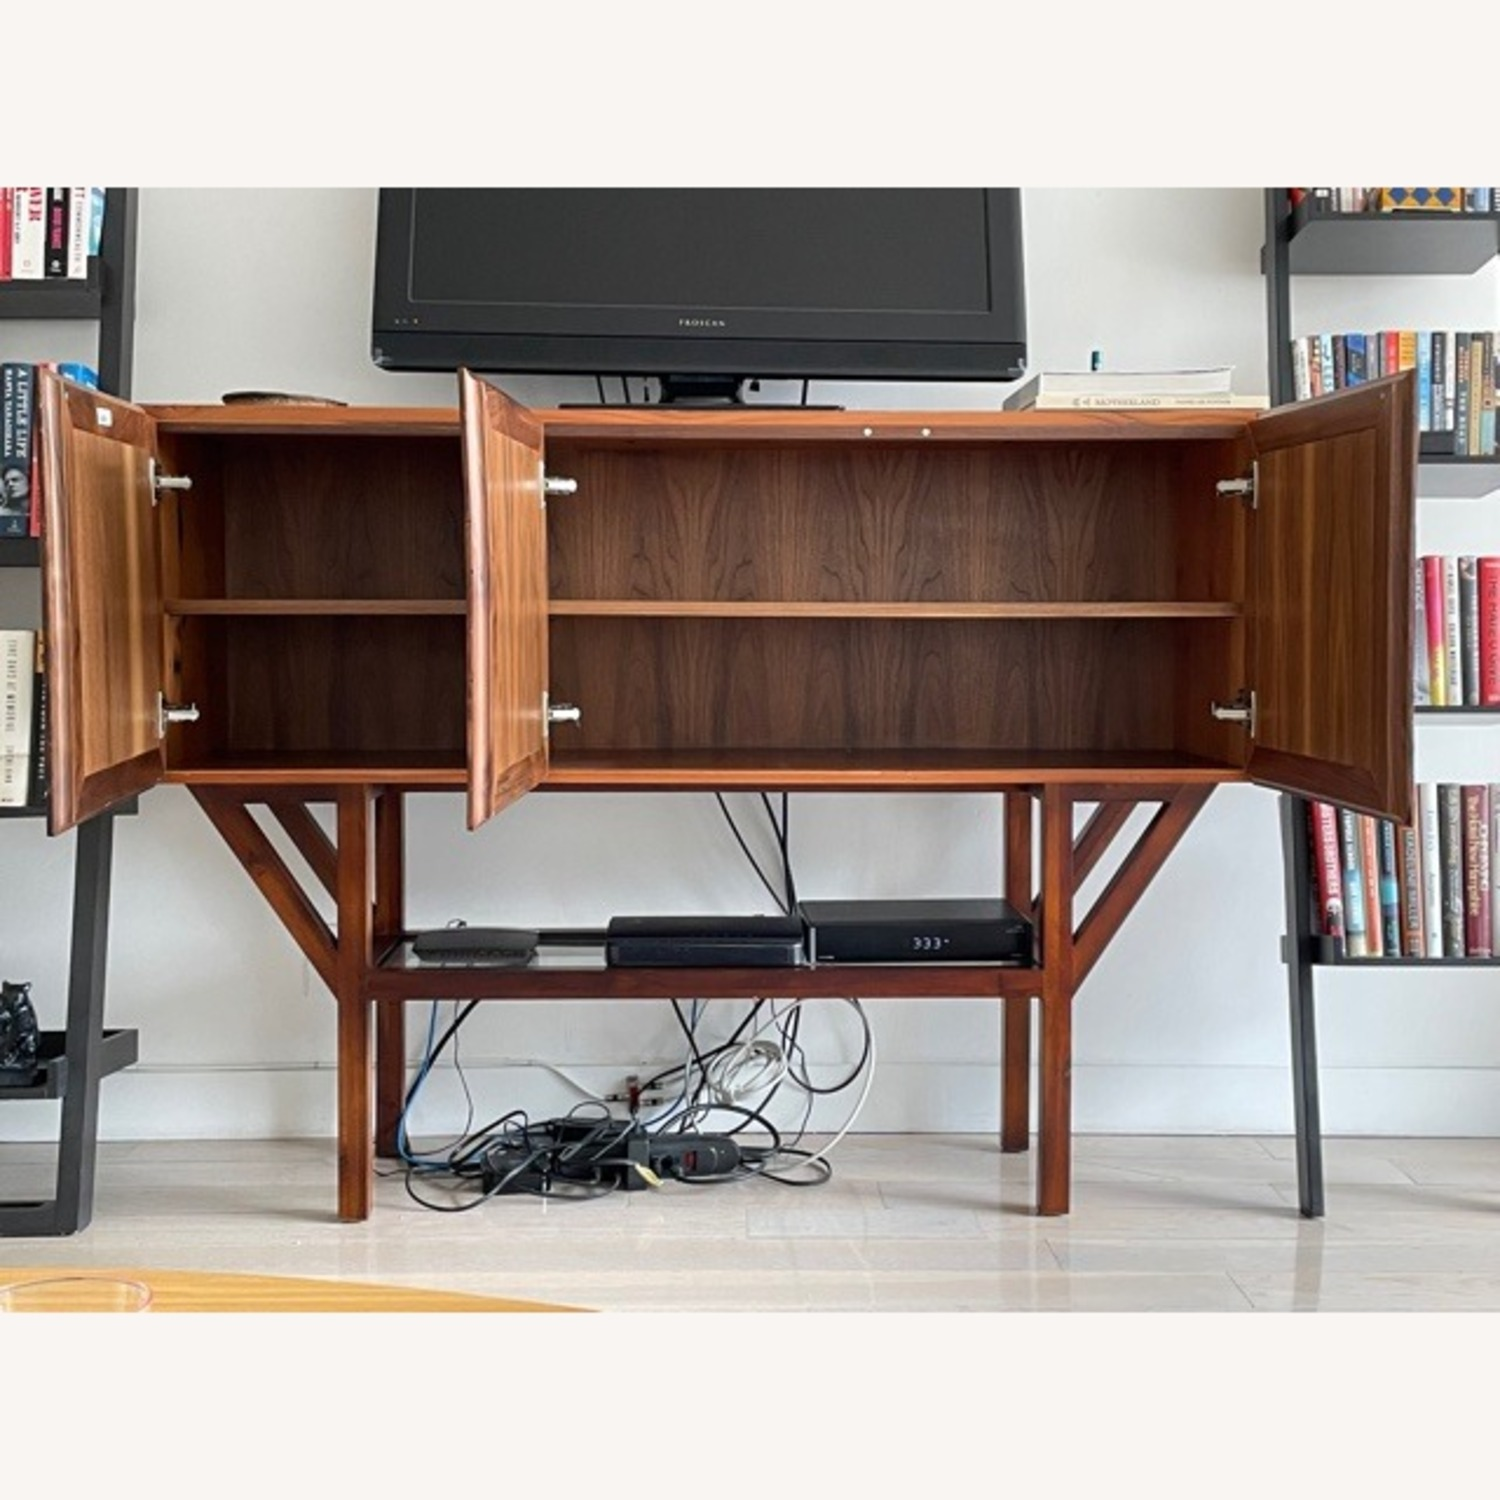 ABC Home Wood Media Table/Credenza/Dresser - image-4